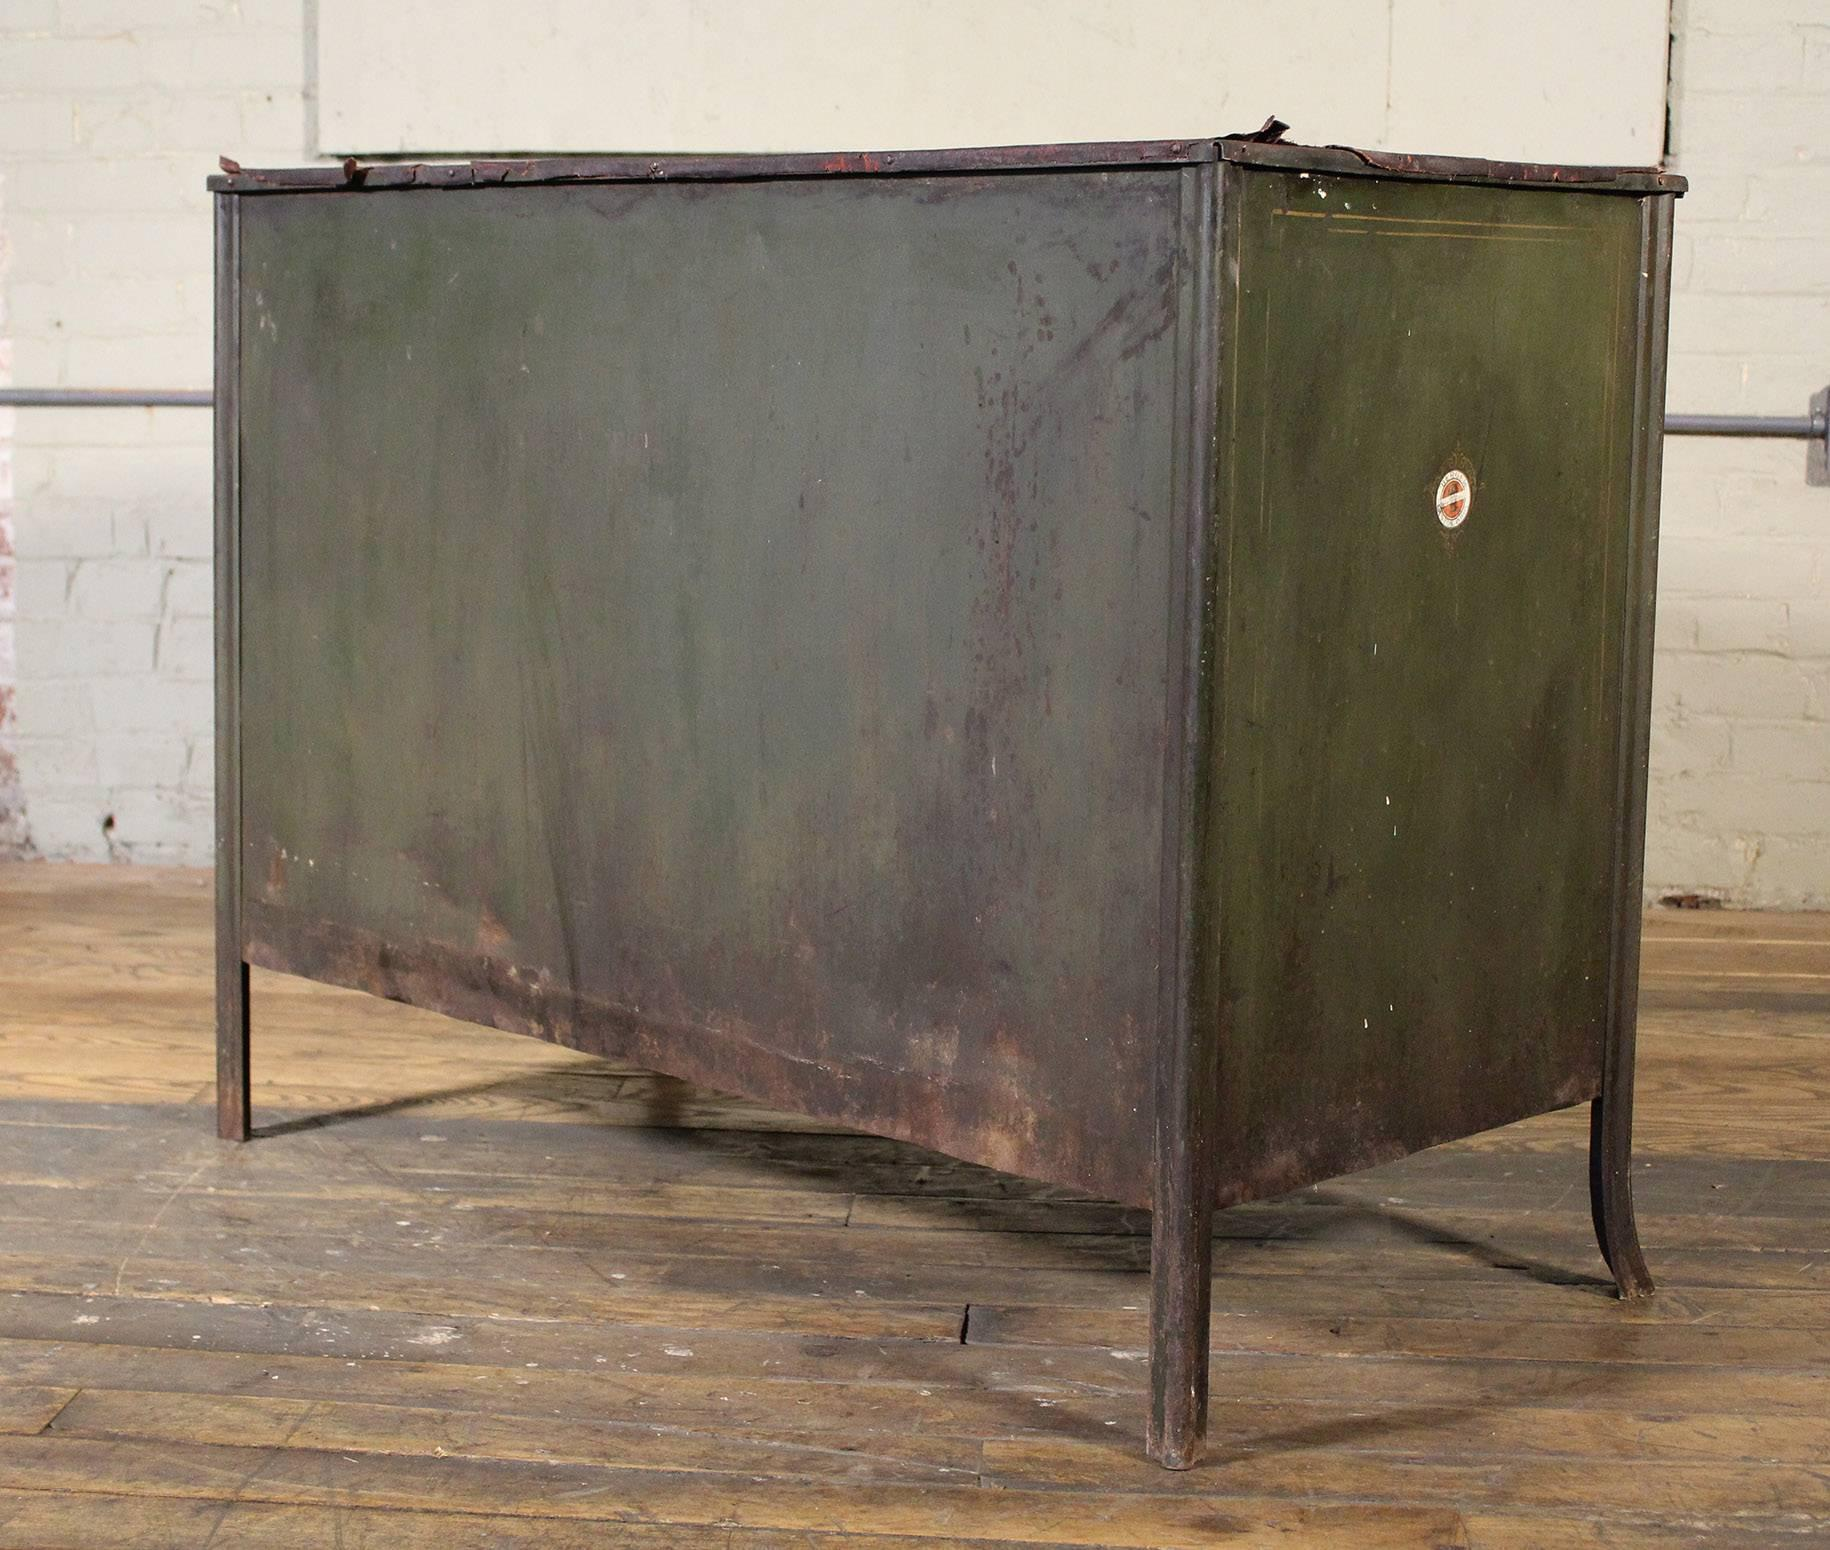 Metal Lateral File Storage Cabinet Vintage Industrial Table Worn Leather  Top For Sale 5